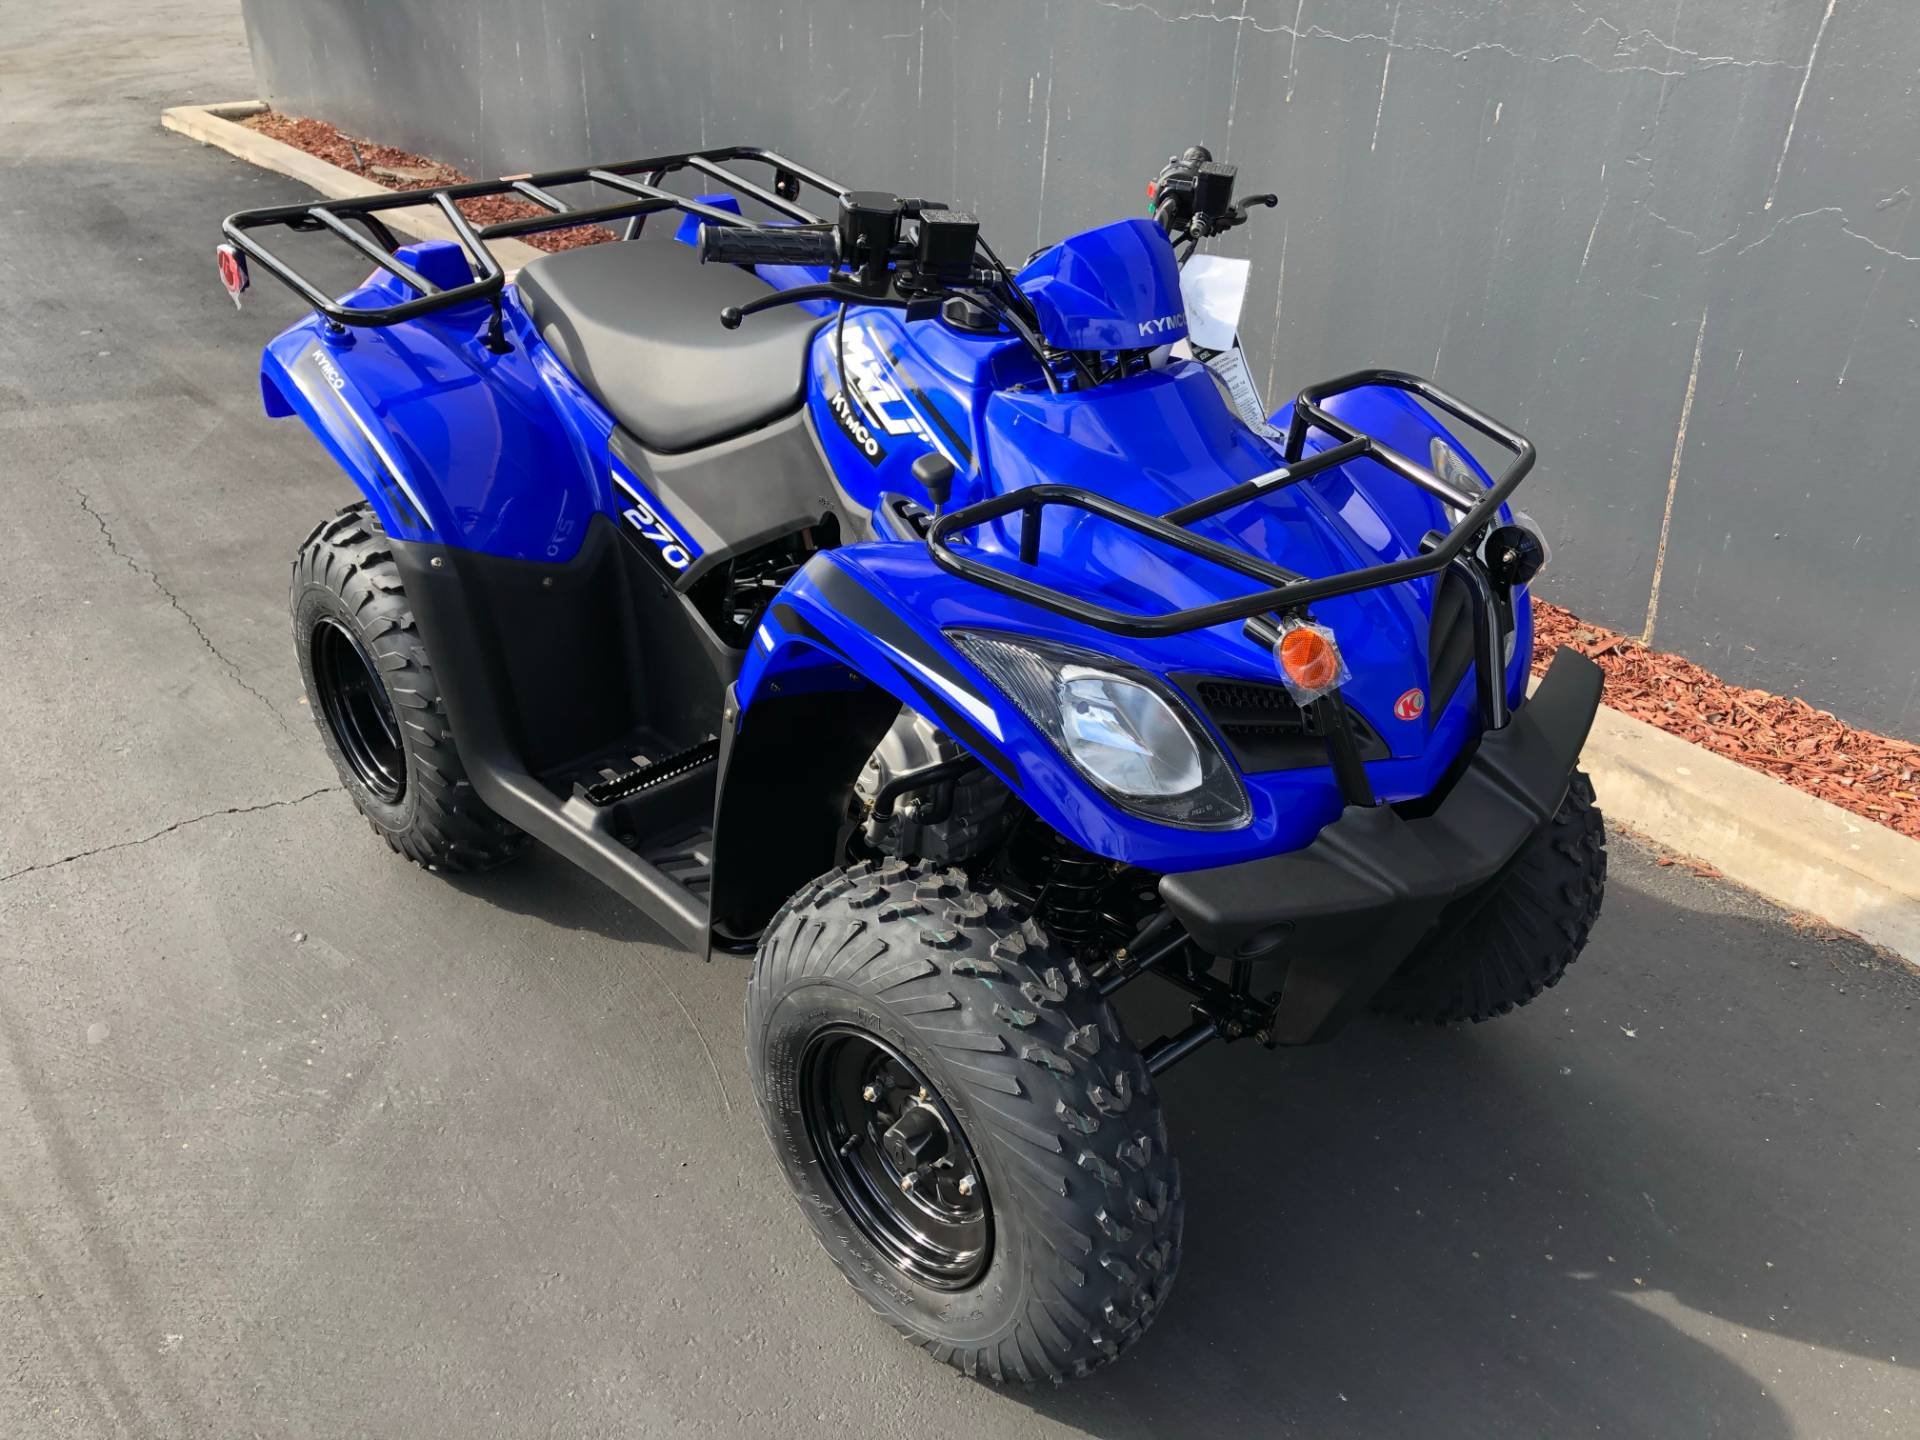 2019 Kymco MXU270 in Chula Vista, California - Photo 2